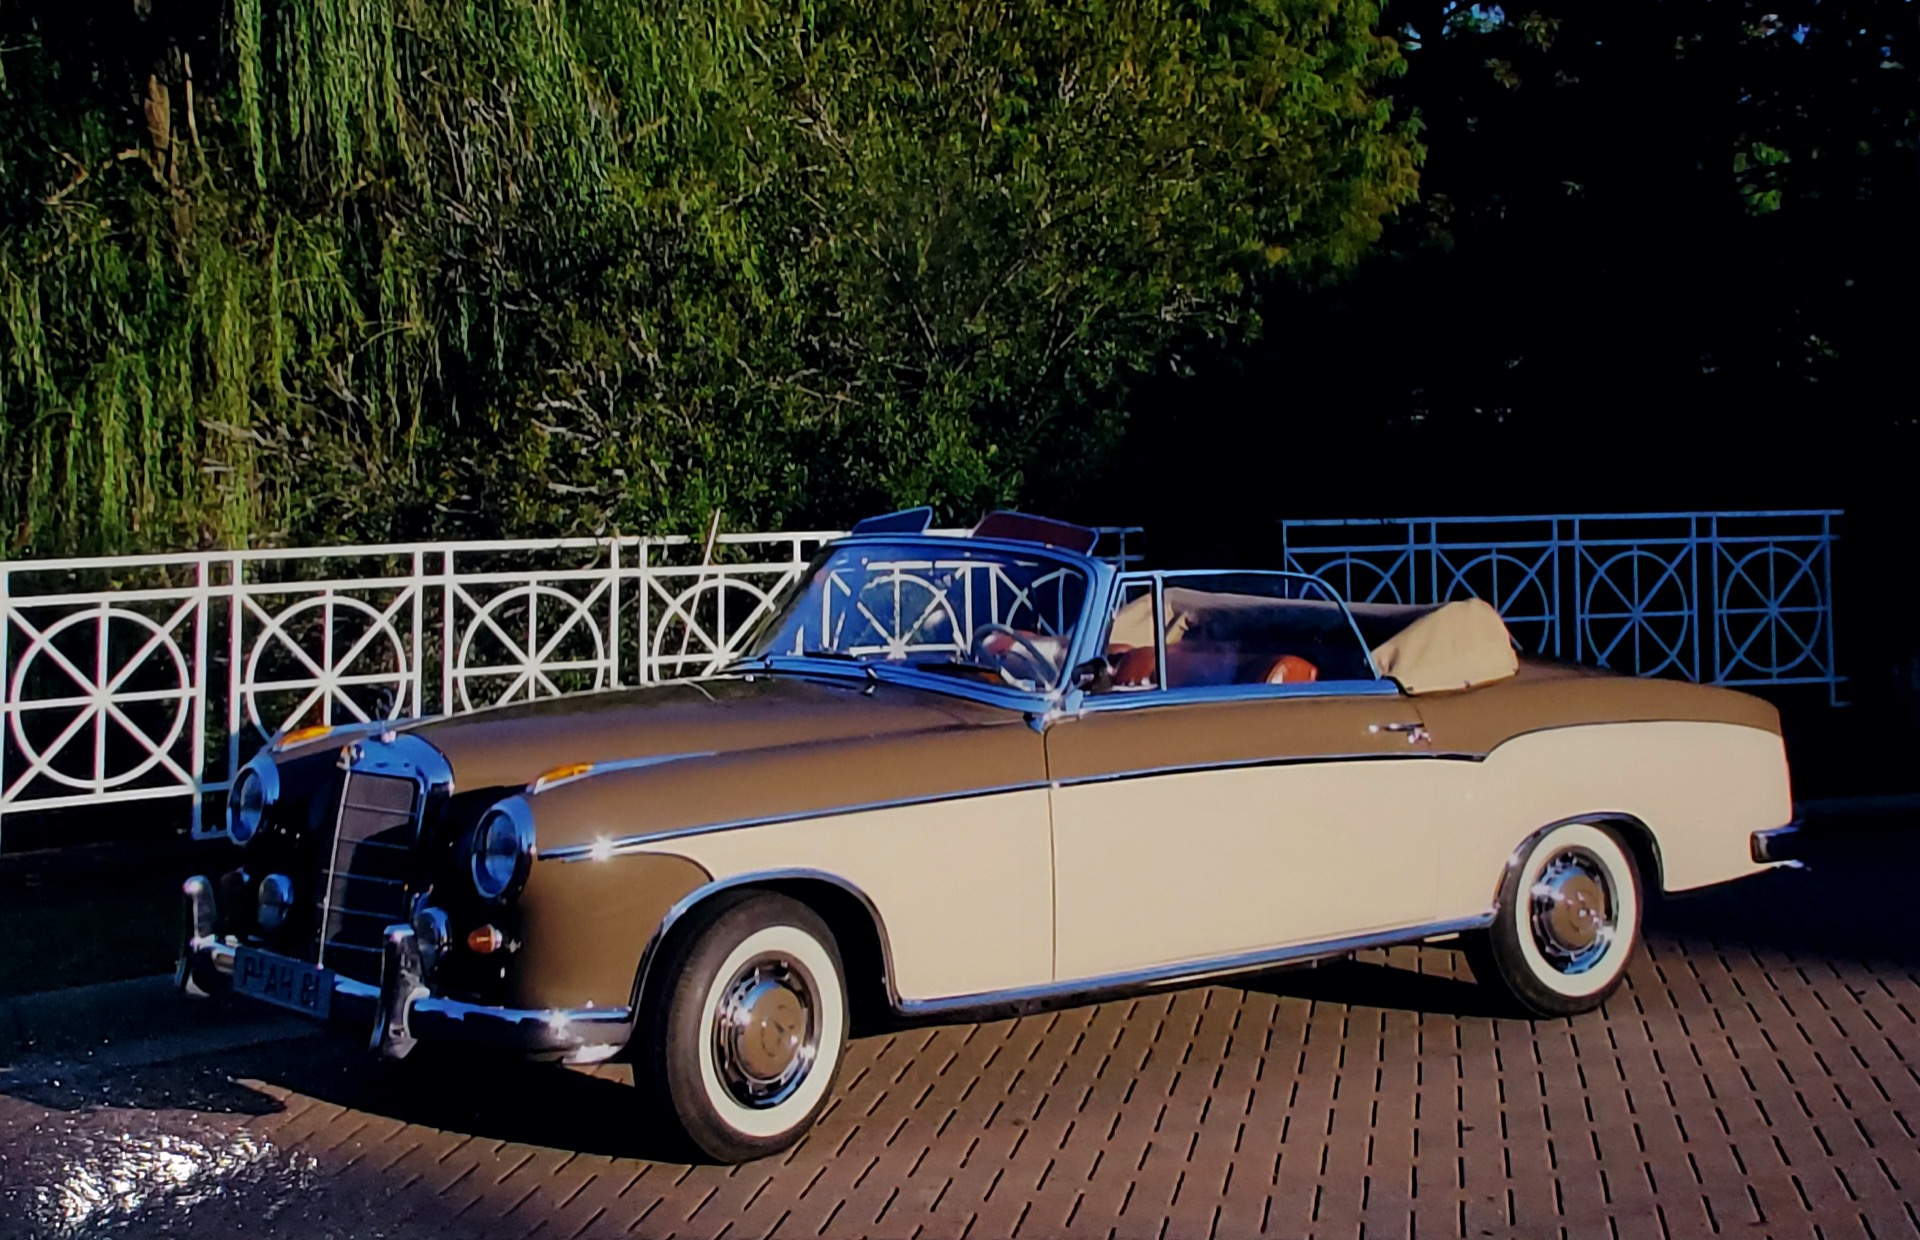 Used 1957 Mercedes-Benz 220 S Cabriolet - Full Restoration for sale Sold at Formula Imports in Charlotte NC 28227 69